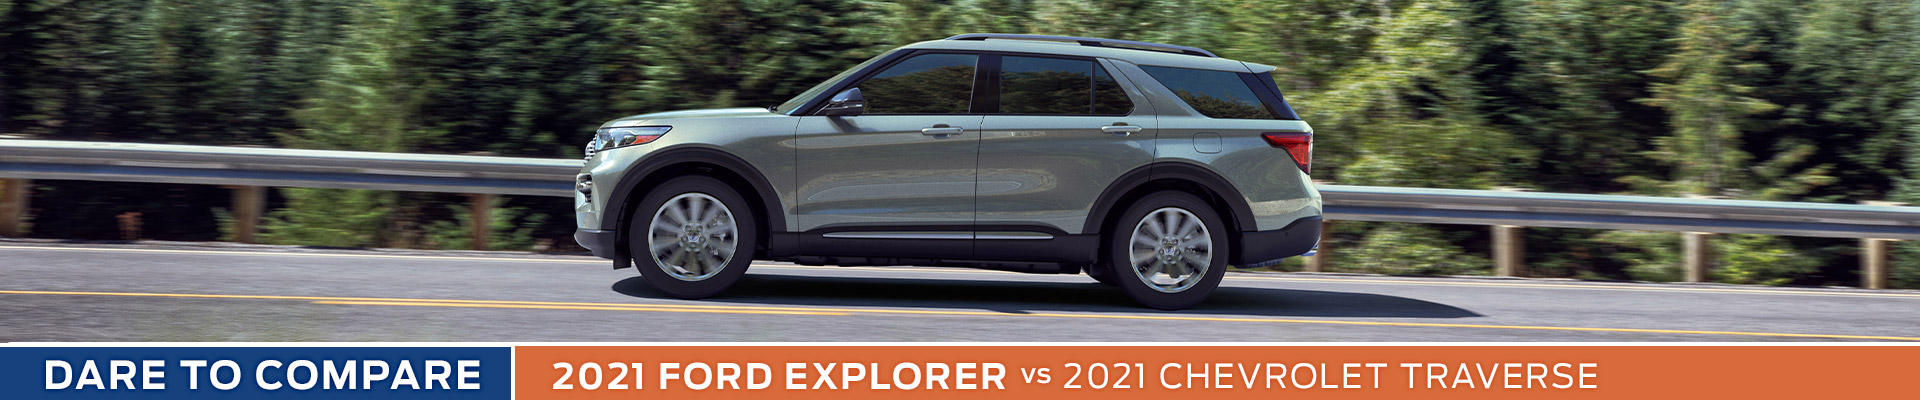 2021 Ford Explorer vs. Chevrolet Traverse - Sun State Ford - Orlando, FL